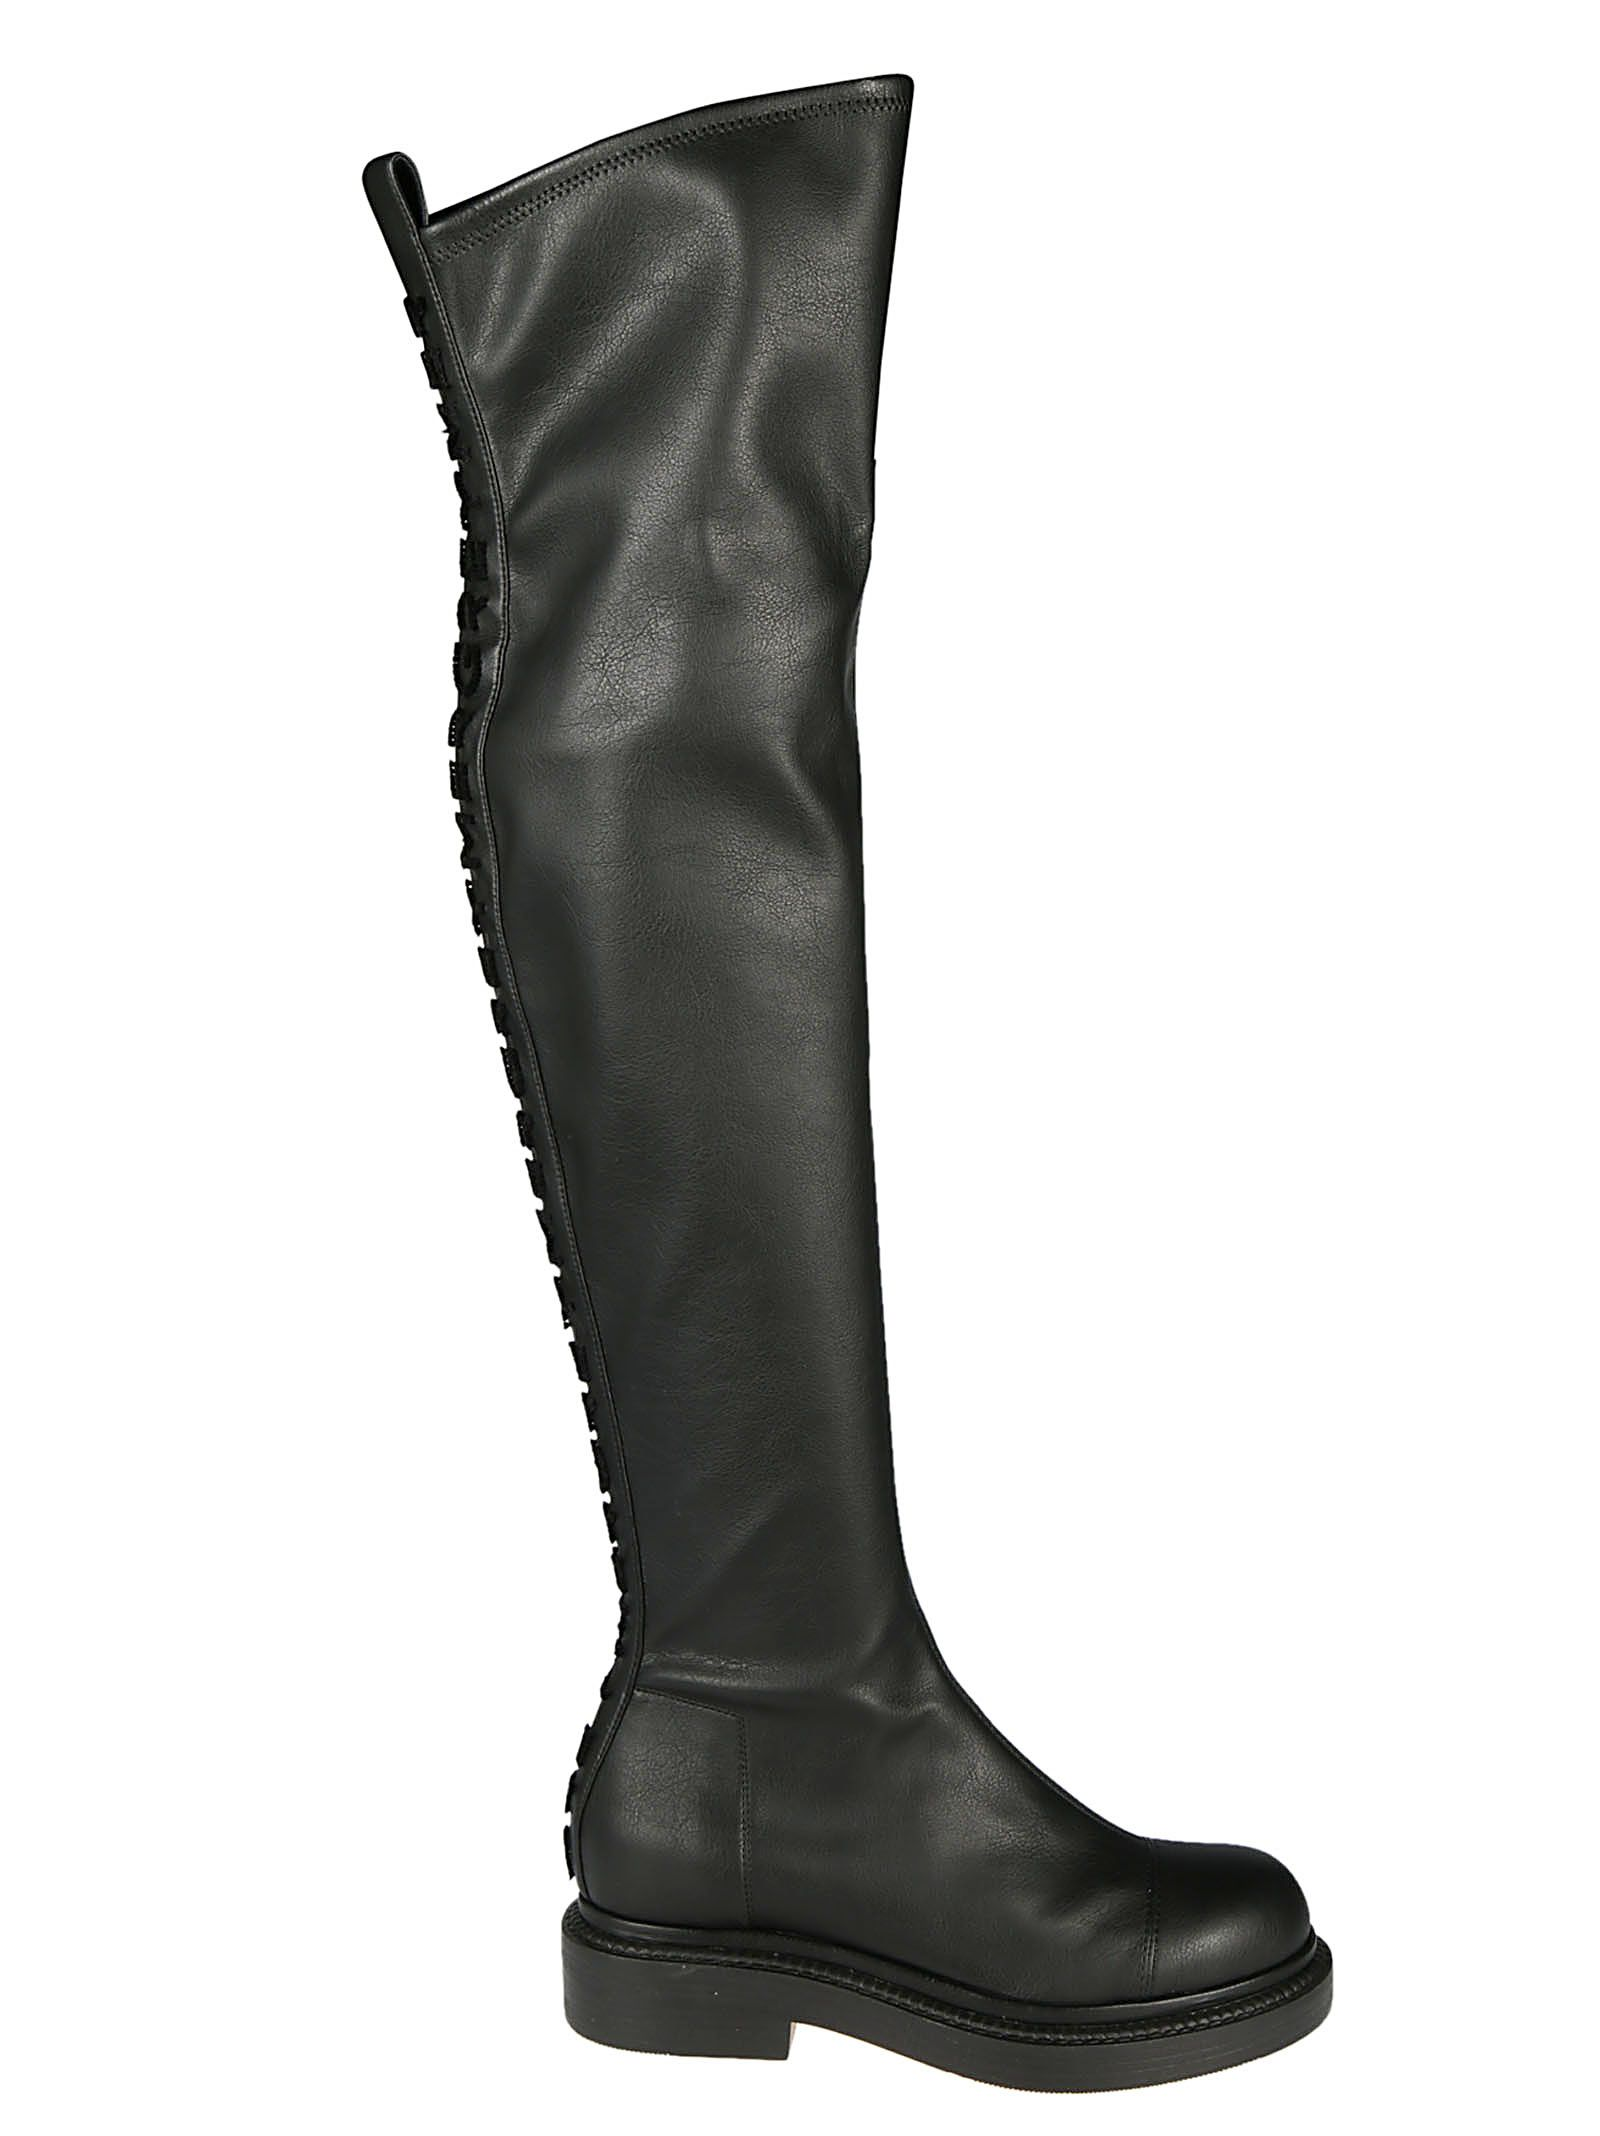 GREY MER Treads Knee-High Boots in Nero